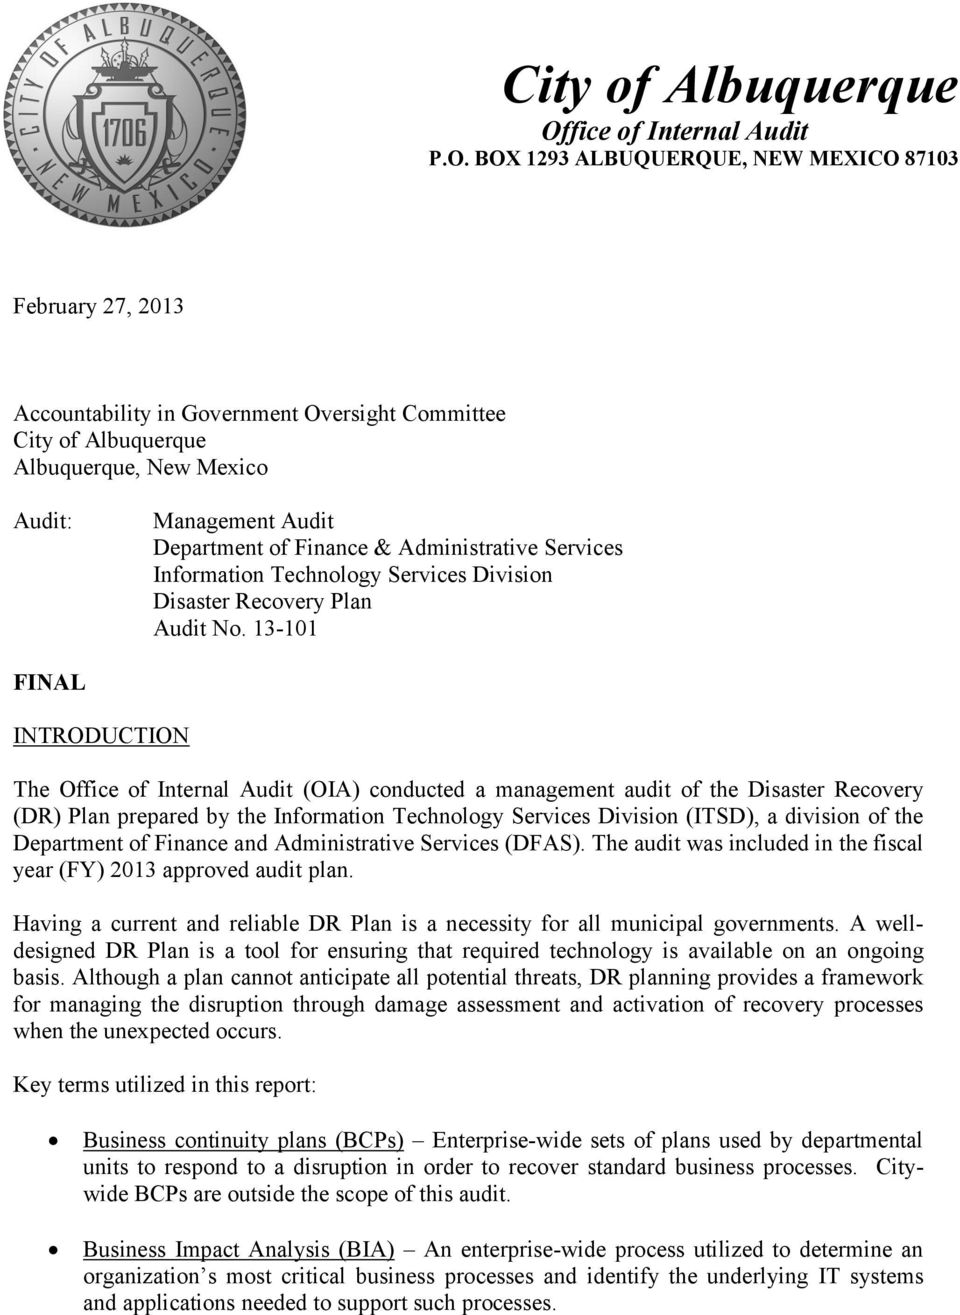 BOX 1293 ALBUQUERQUE, NEW MEXICO 87103 Accountability in Government Oversight Committee City of Albuquerque Albuquerque, New Mexico Audit: Management Audit Department of Finance & Administrative